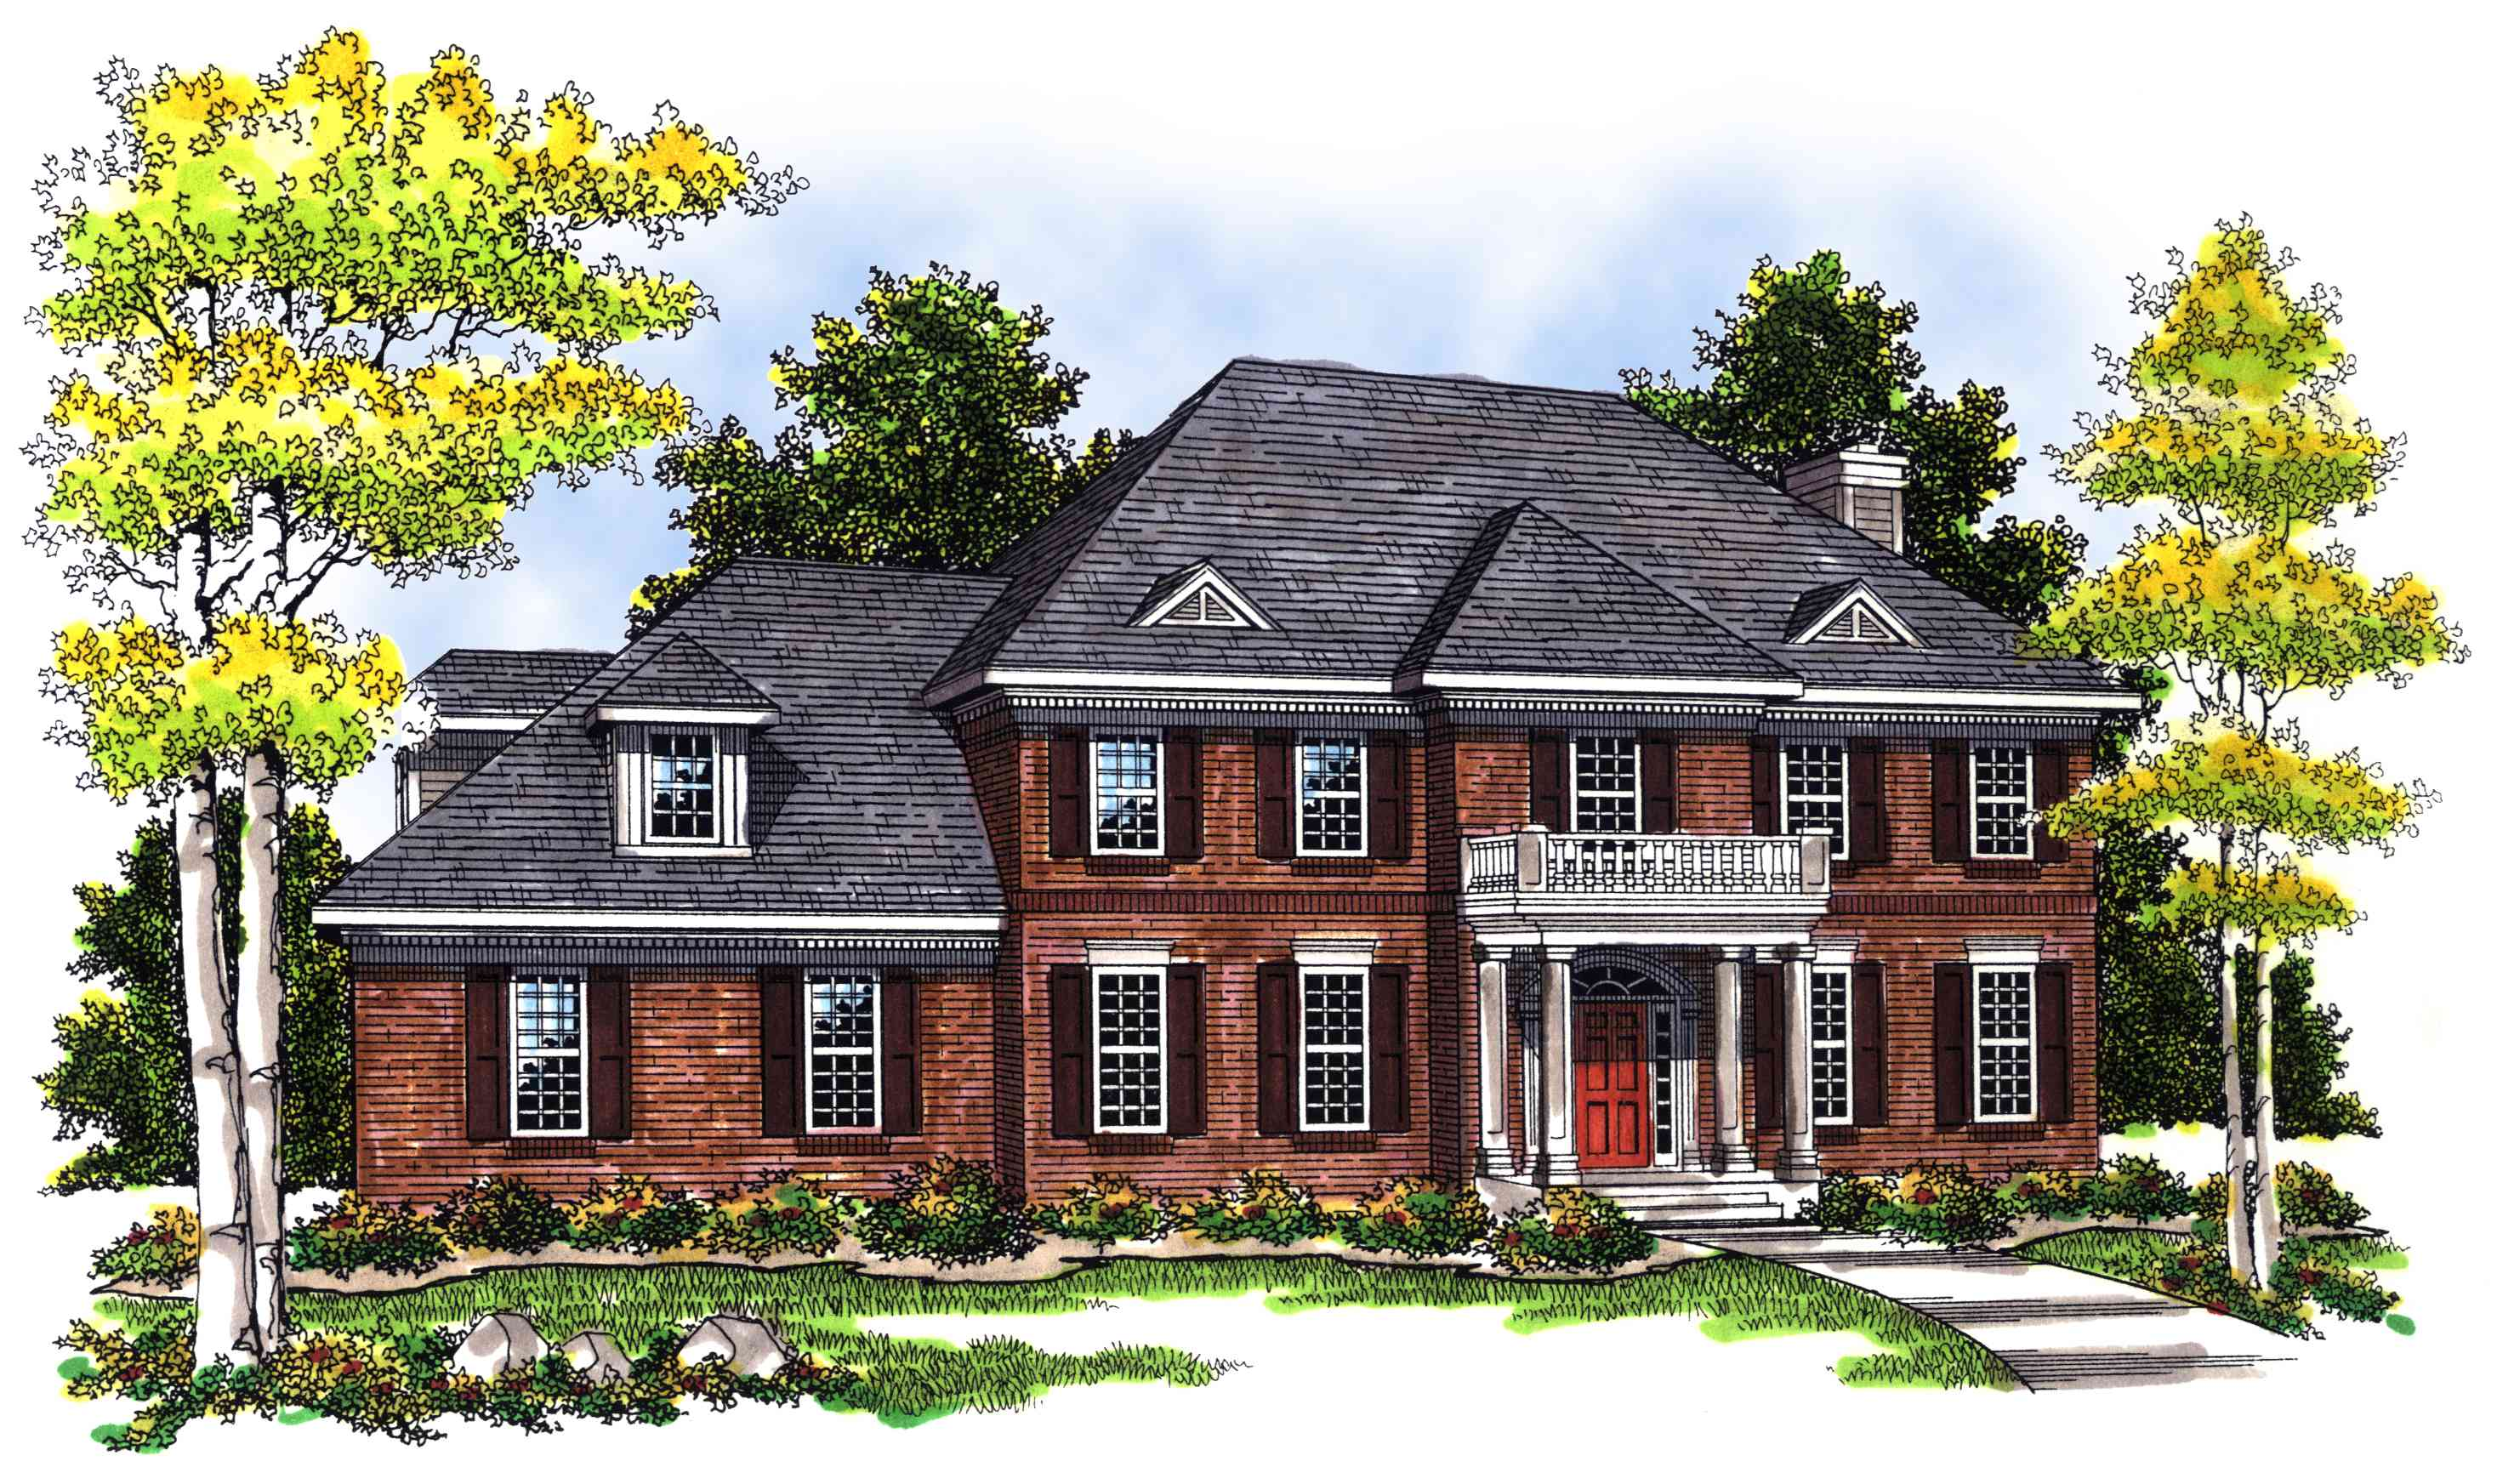 2 story brick home plan 89450ah architectural designs for 2 story brick house plans